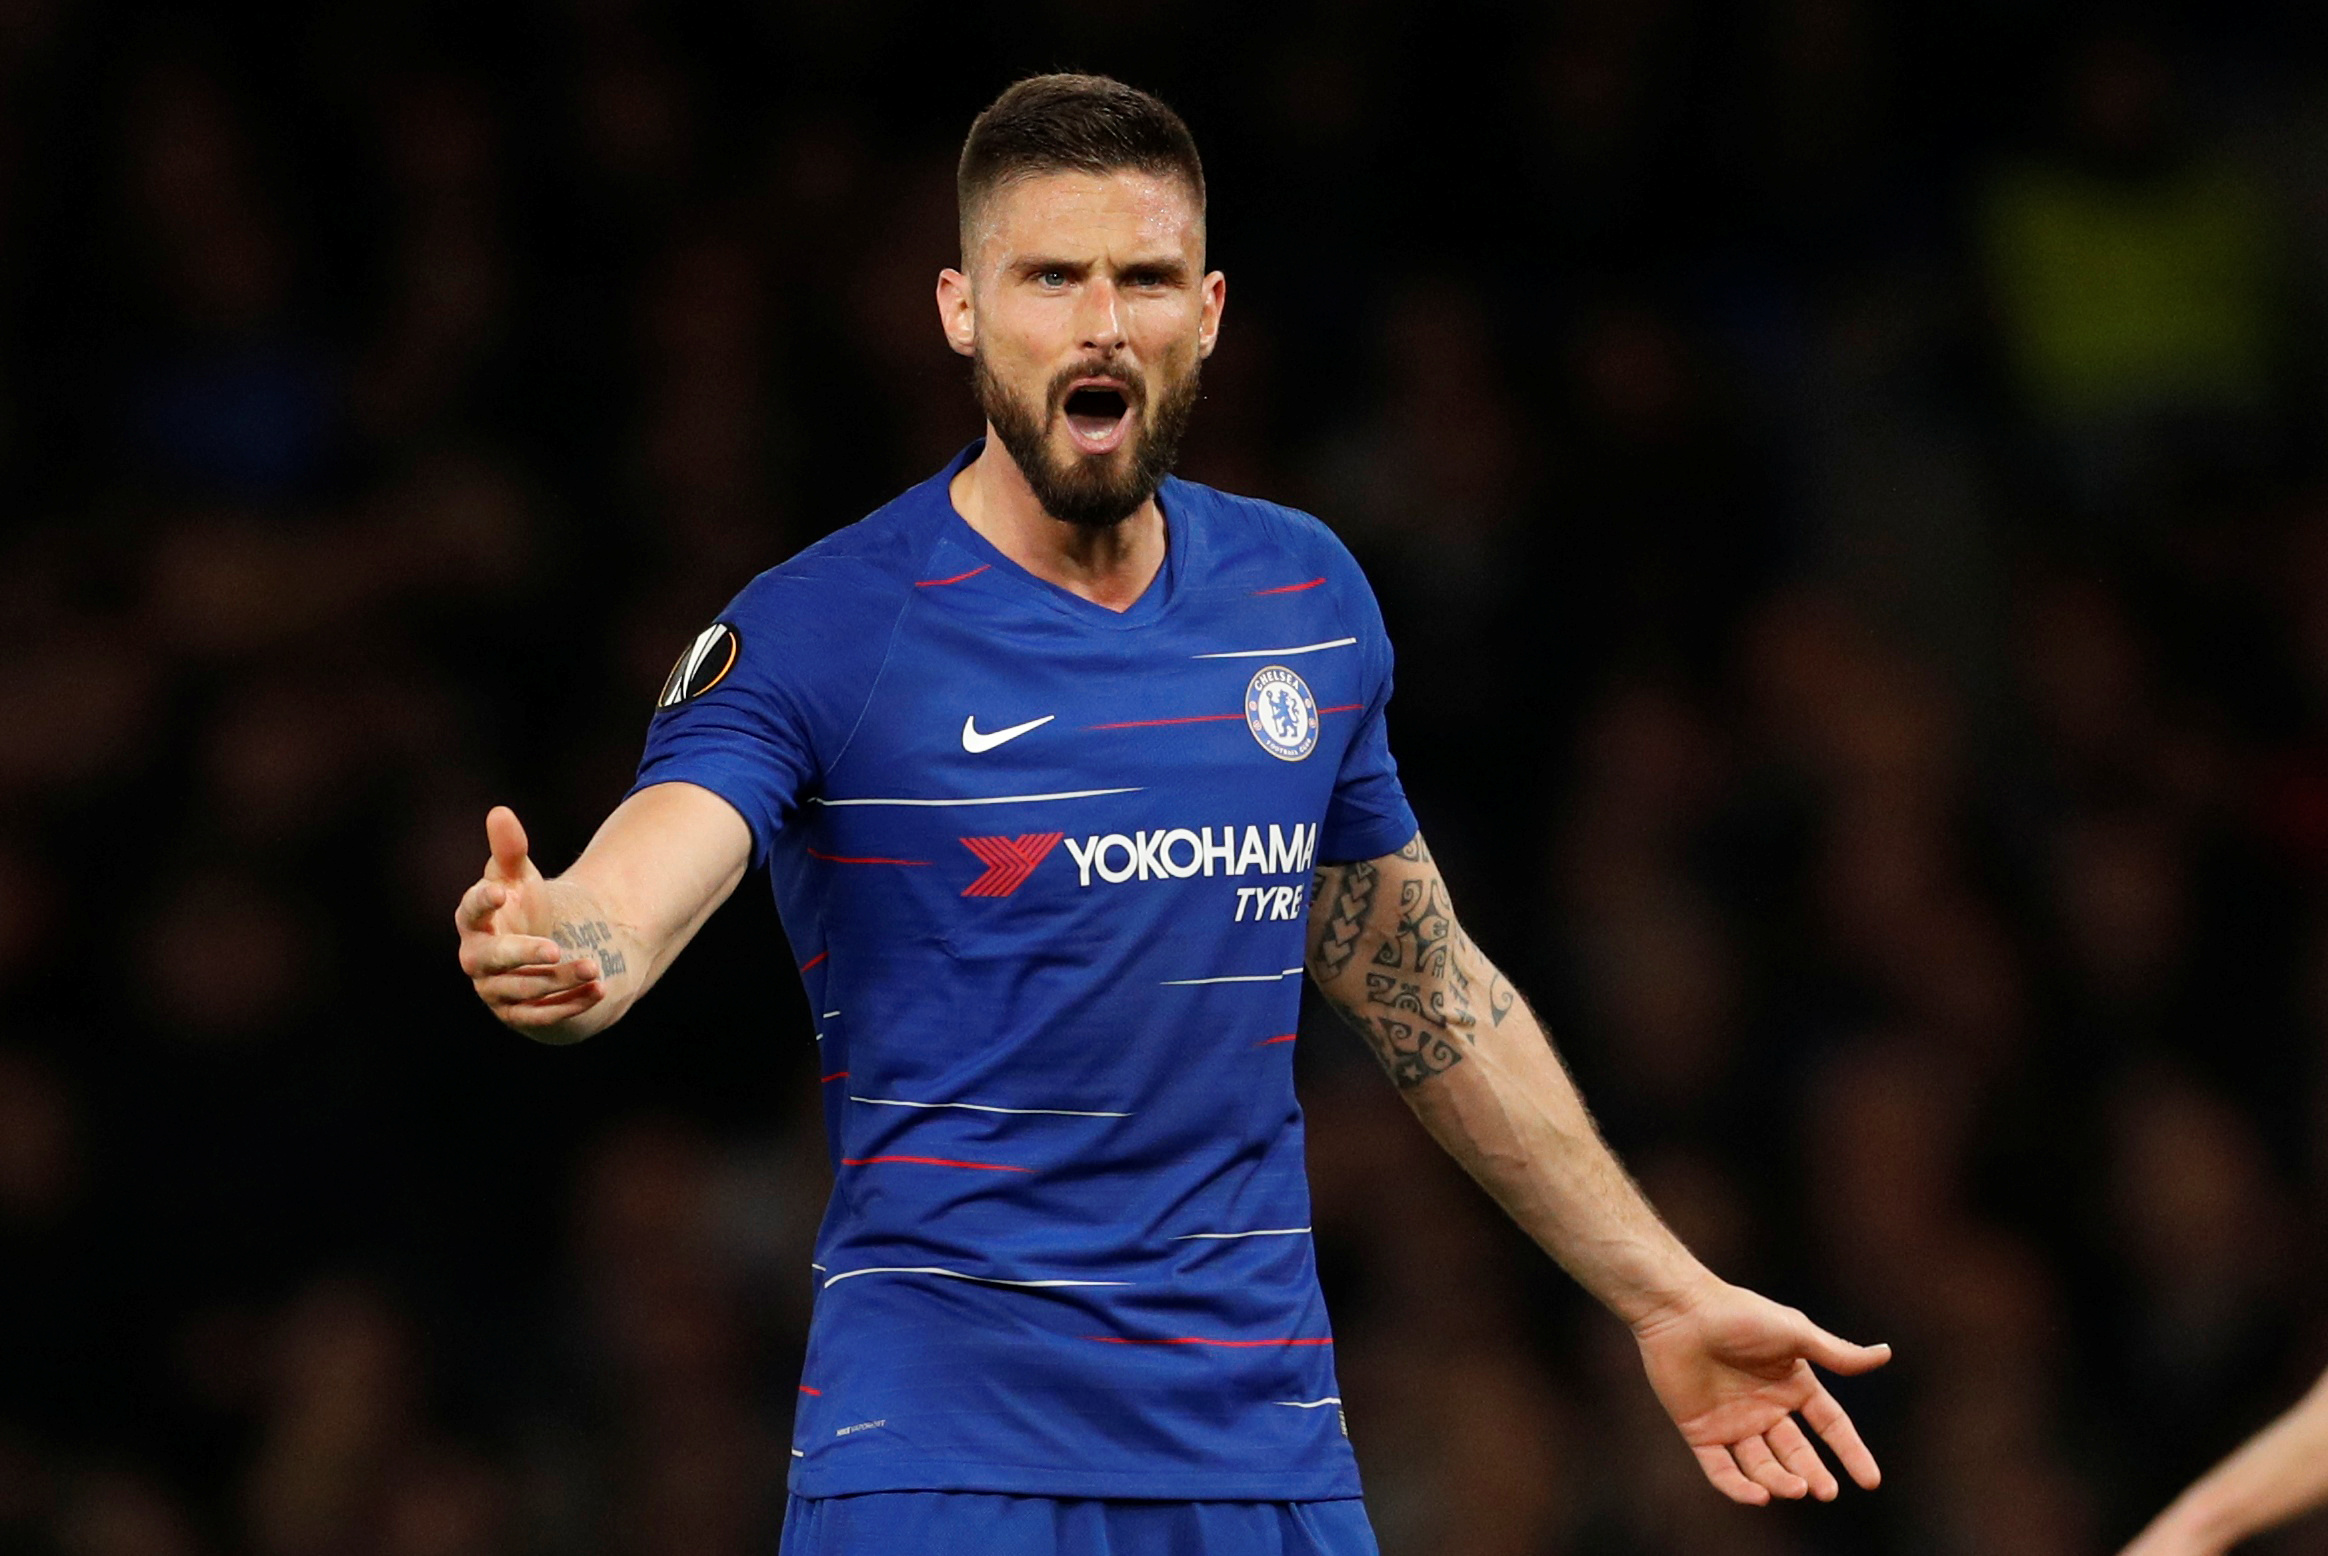 low priced 1755d 90e61 Chelsea's Giroud signs one-year contract extension | The ...